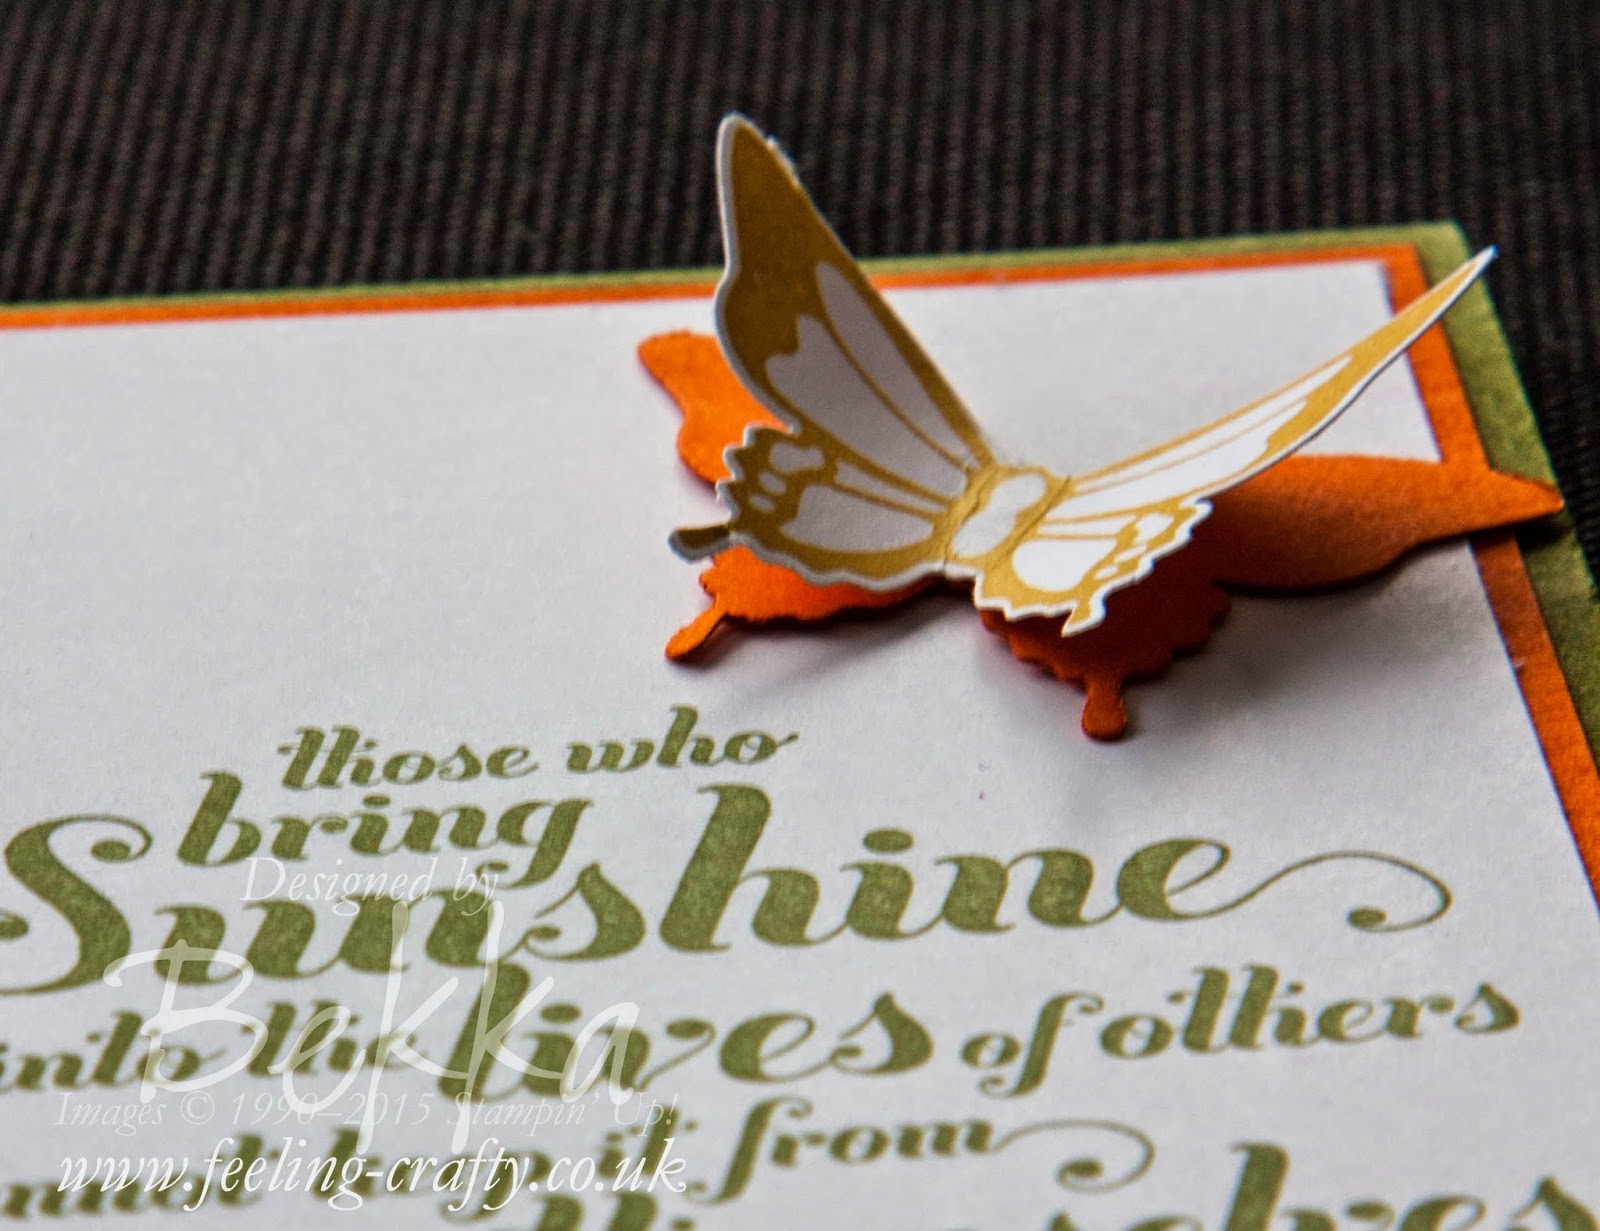 Gorgeous Butterfly from the Nature's Perfection Stamp Set - find out how to get yours here